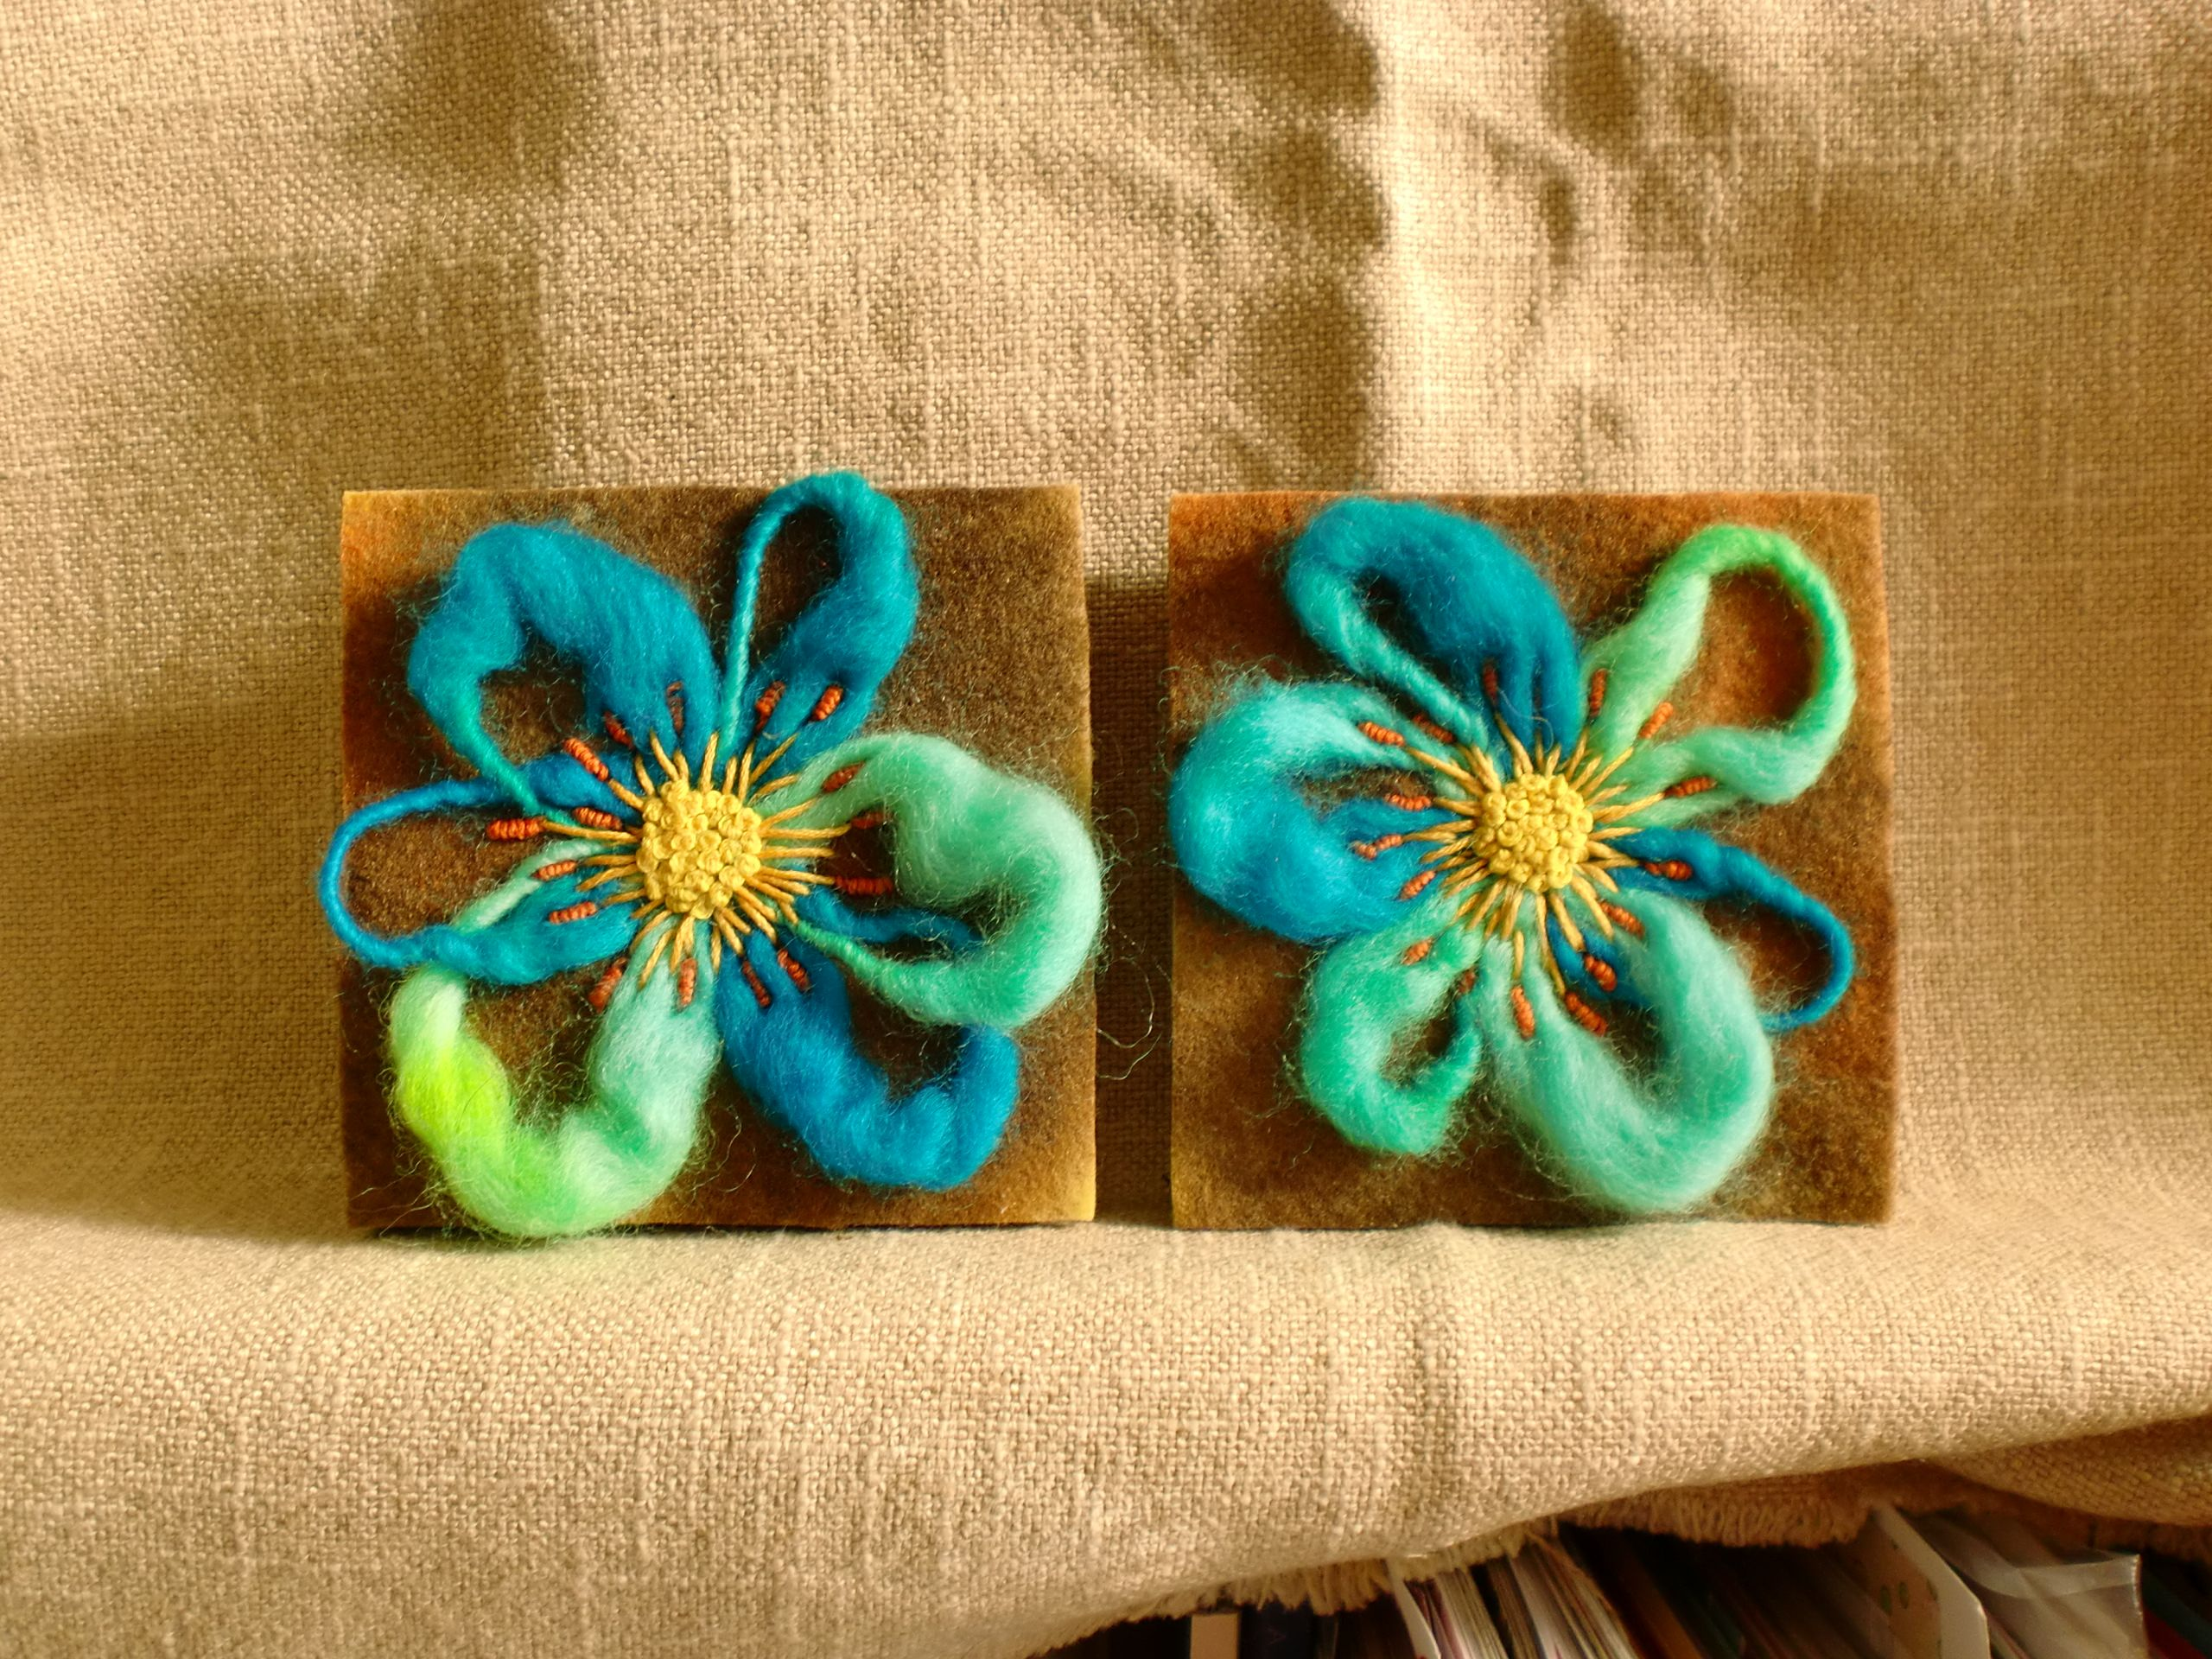 Needle felt with embroidered centres by Sheila Hodson.